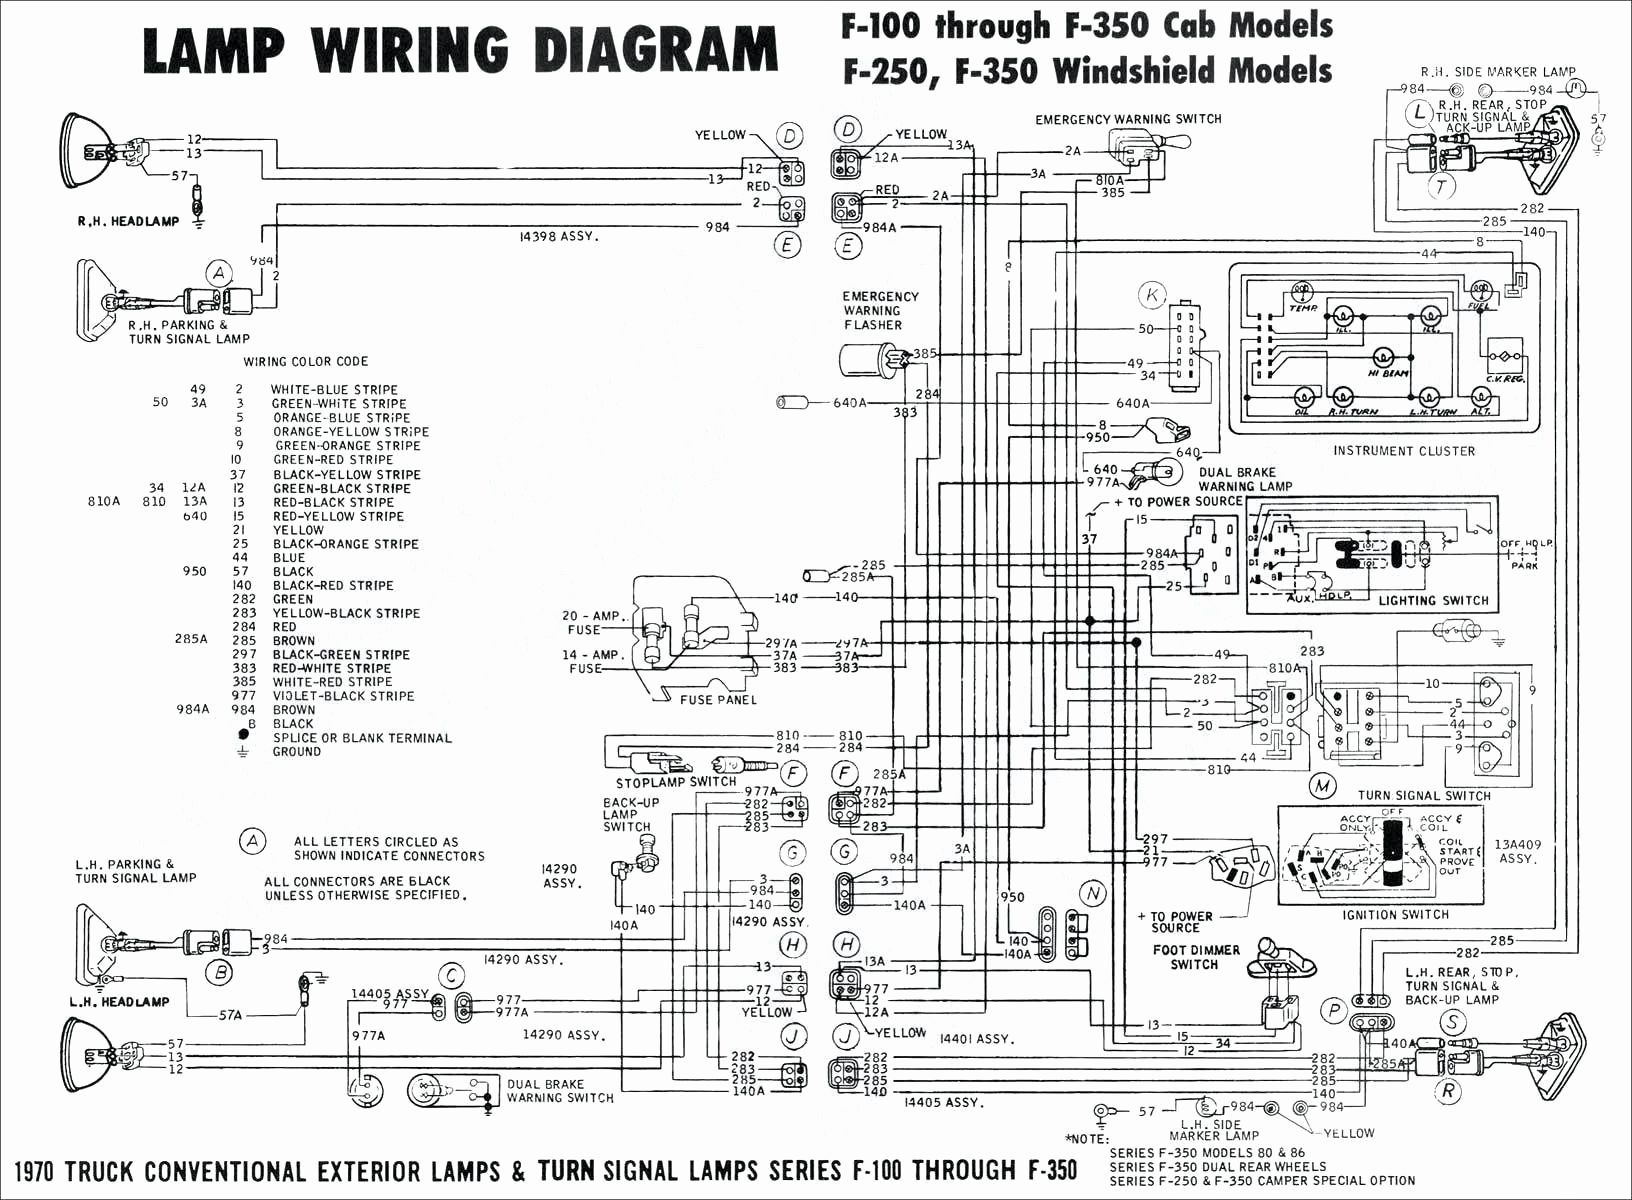 Exiss Trailer Plug Wiring - Electrical Schematic Wiring Diagram • - Exiss Horse Trailer Wiring Diagram